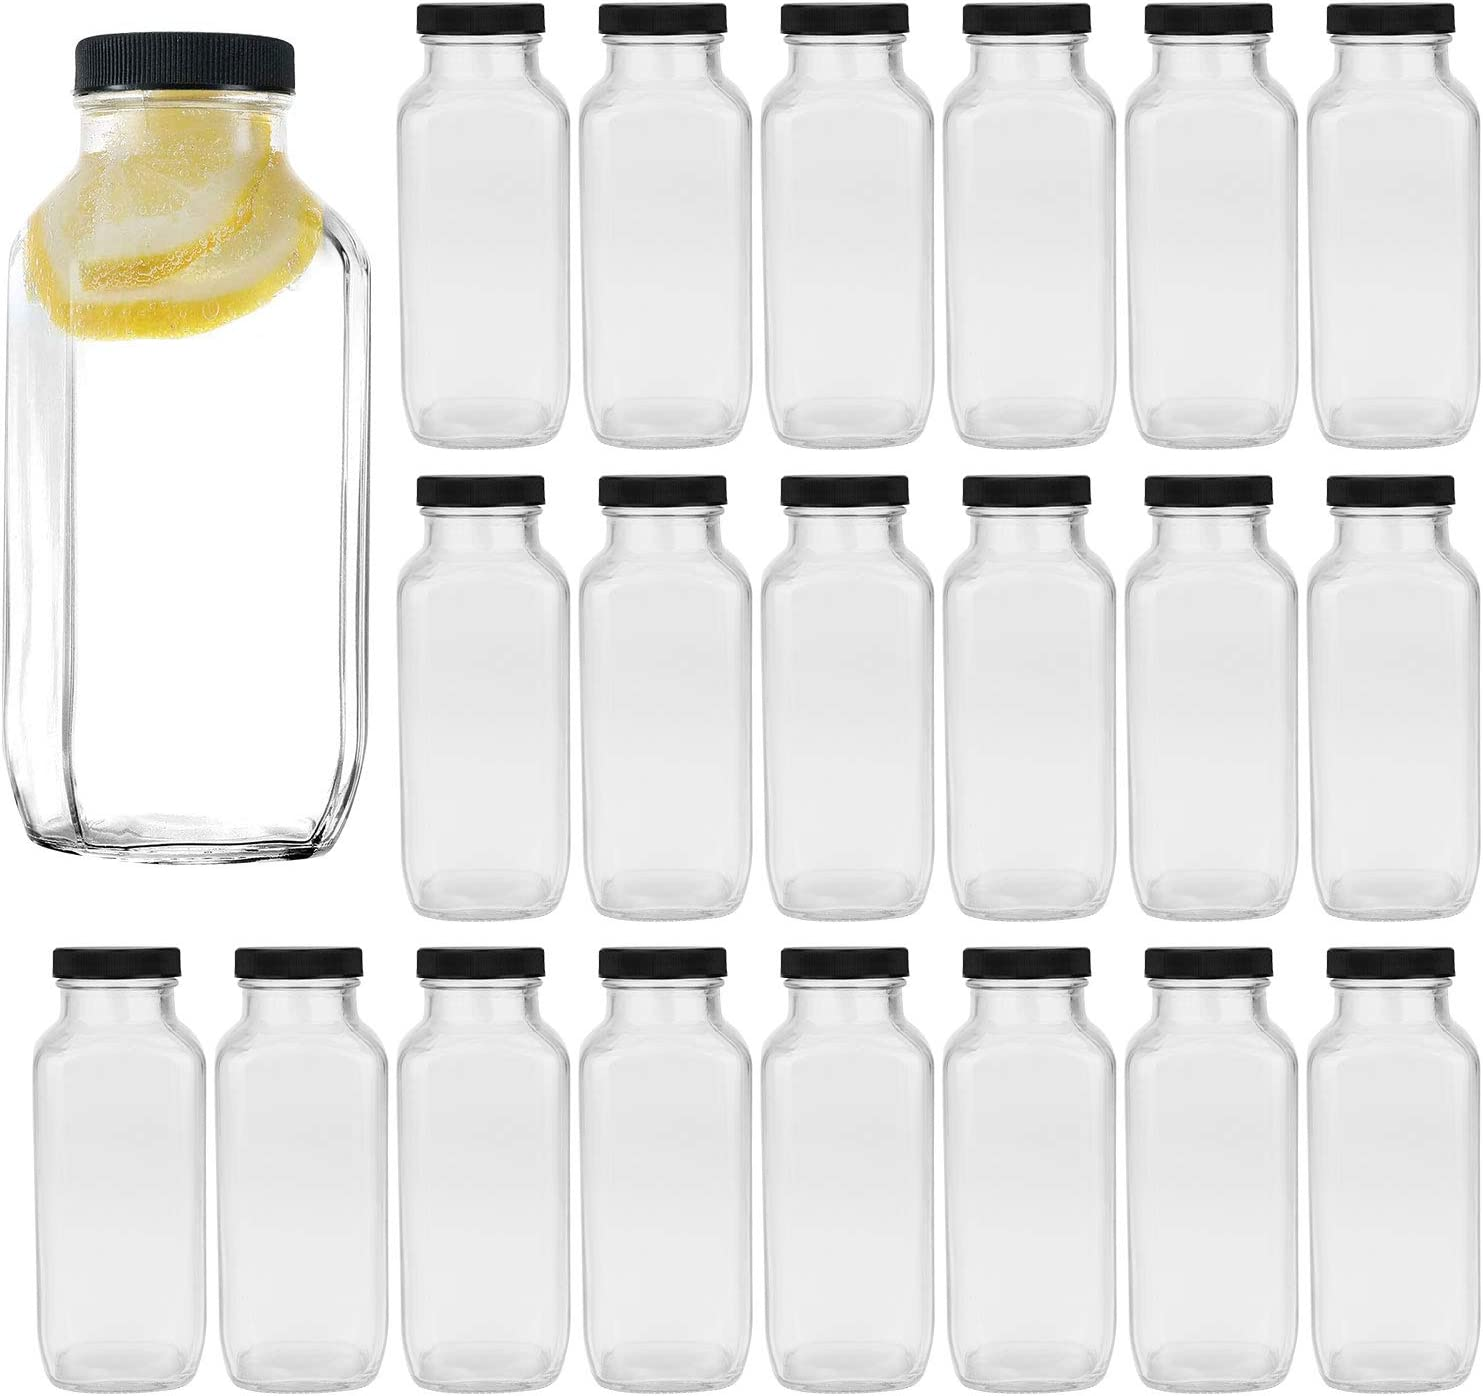 Vintage Water Bottles,Glass Drinking Bottles 16oz,Square Beverage Bottles 500ml With Lids For Kombucha,Tea,Glass Bottles For Homemade Drinks,Travel Reusable Milk Bottles Juiceing Bottles 20Pack